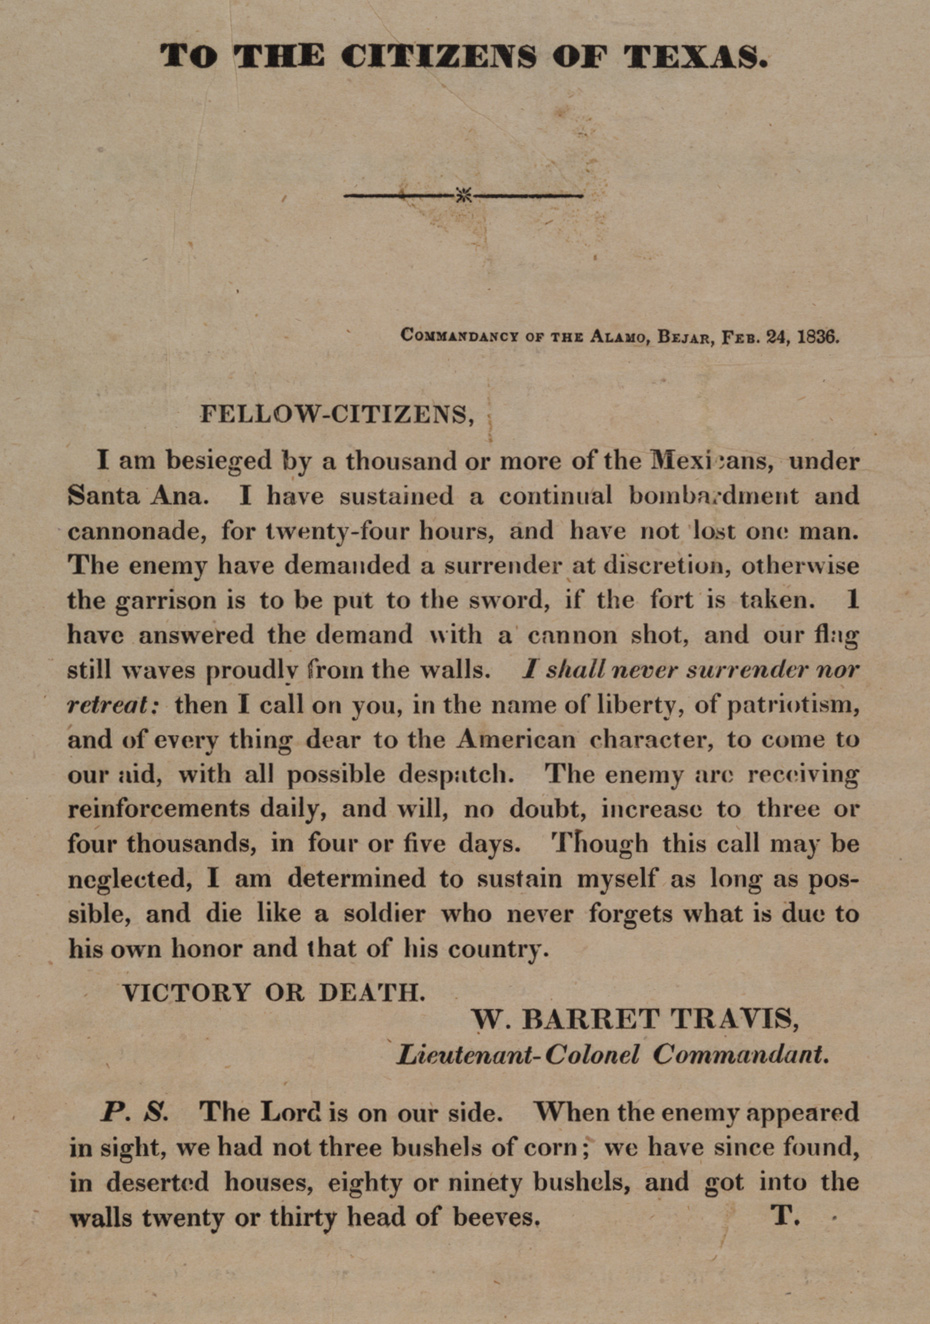 a plea to defend the alamo 1836 the gilder lehrman institute of william barret travis ldquoto the citizens of texas rdquo 24 1836